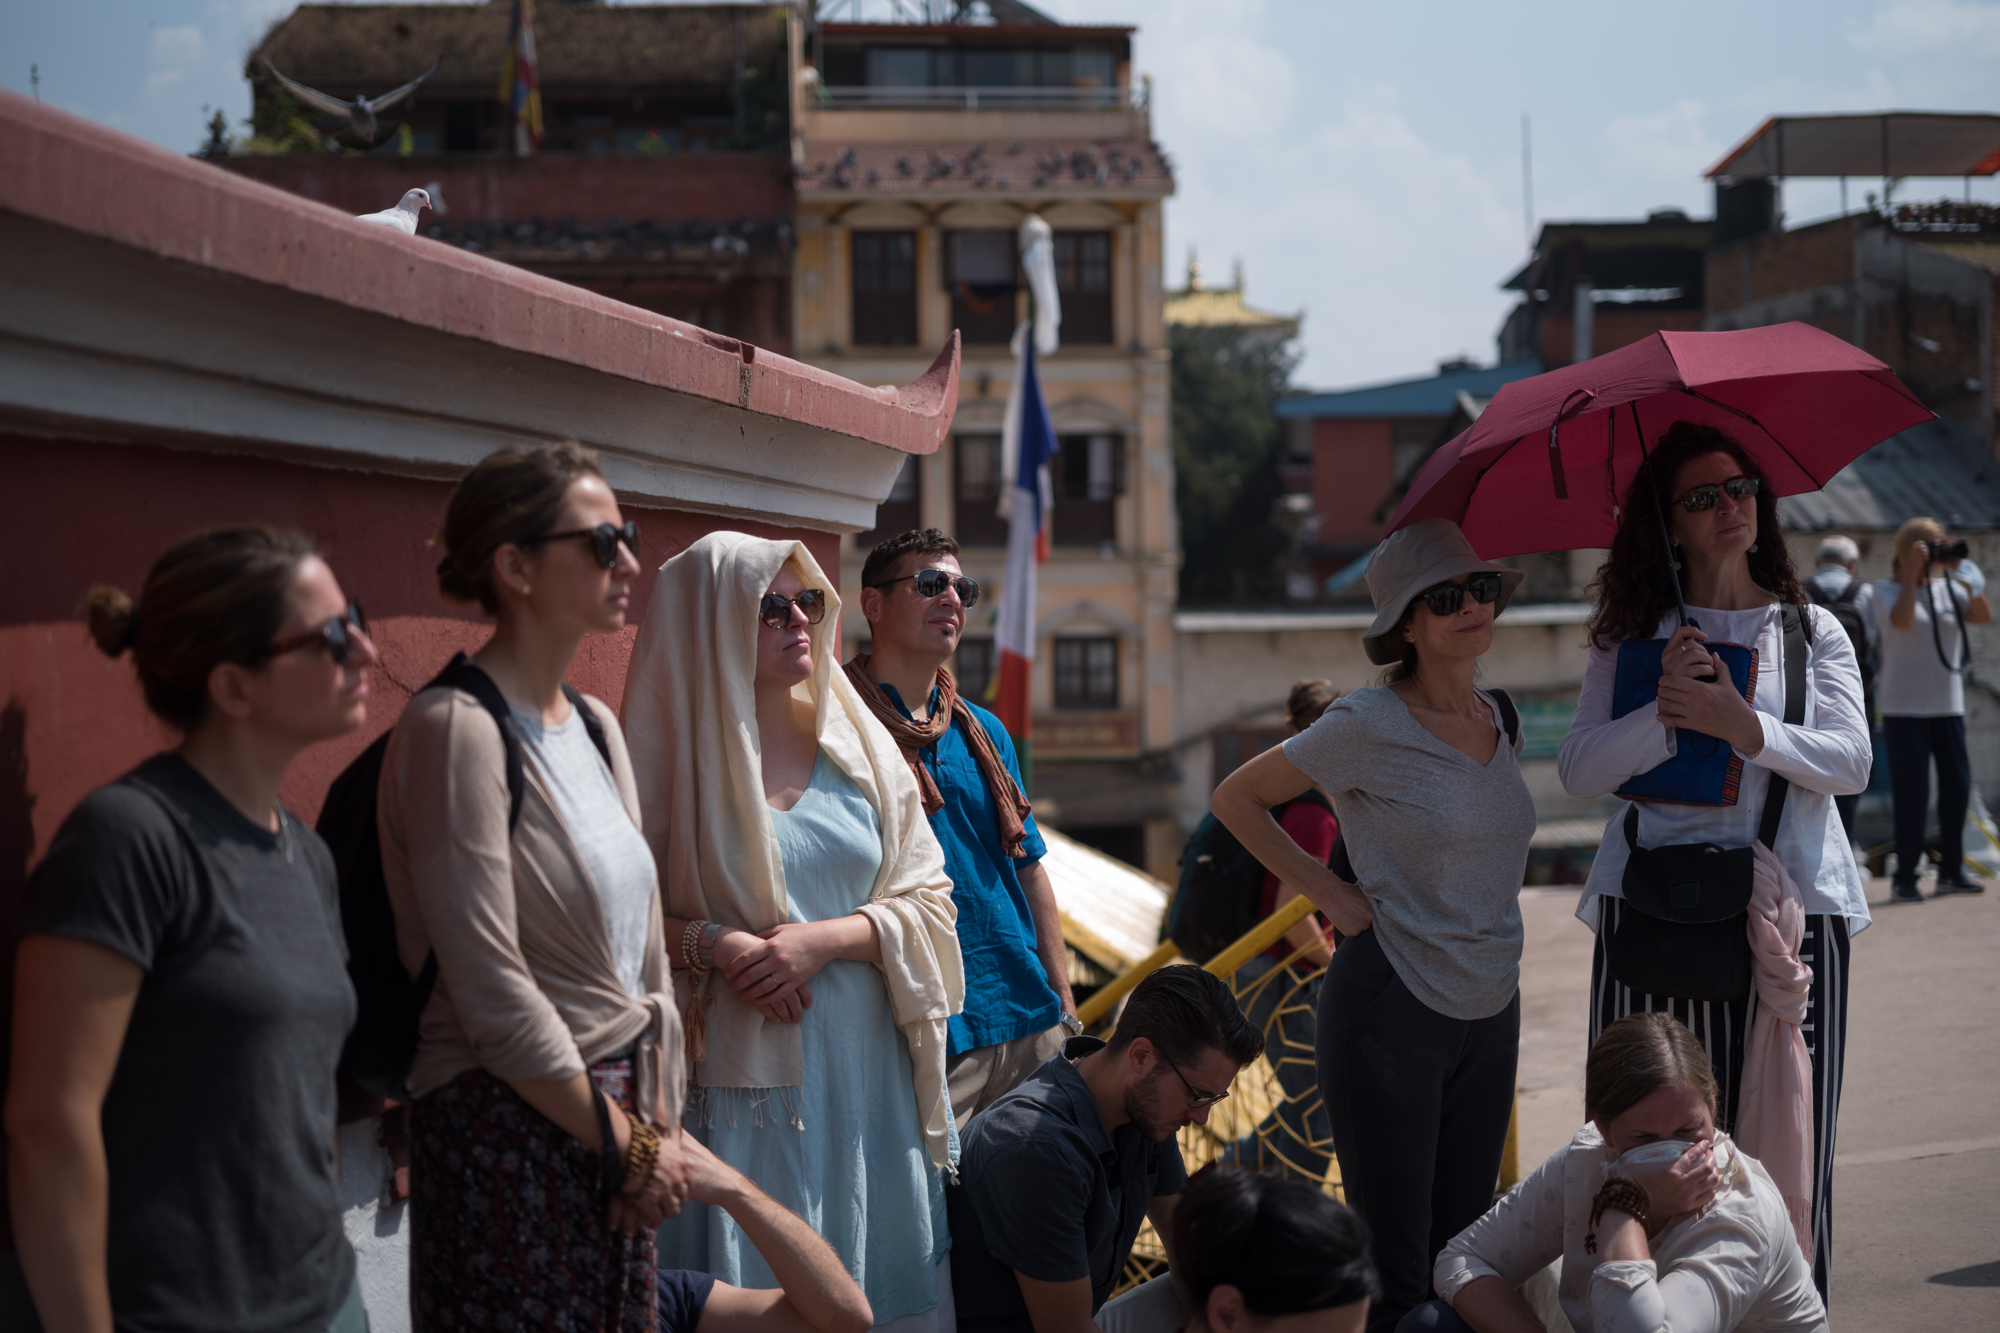 Nepal_Phill O'Leary_03_20181003-L1009288.jpg